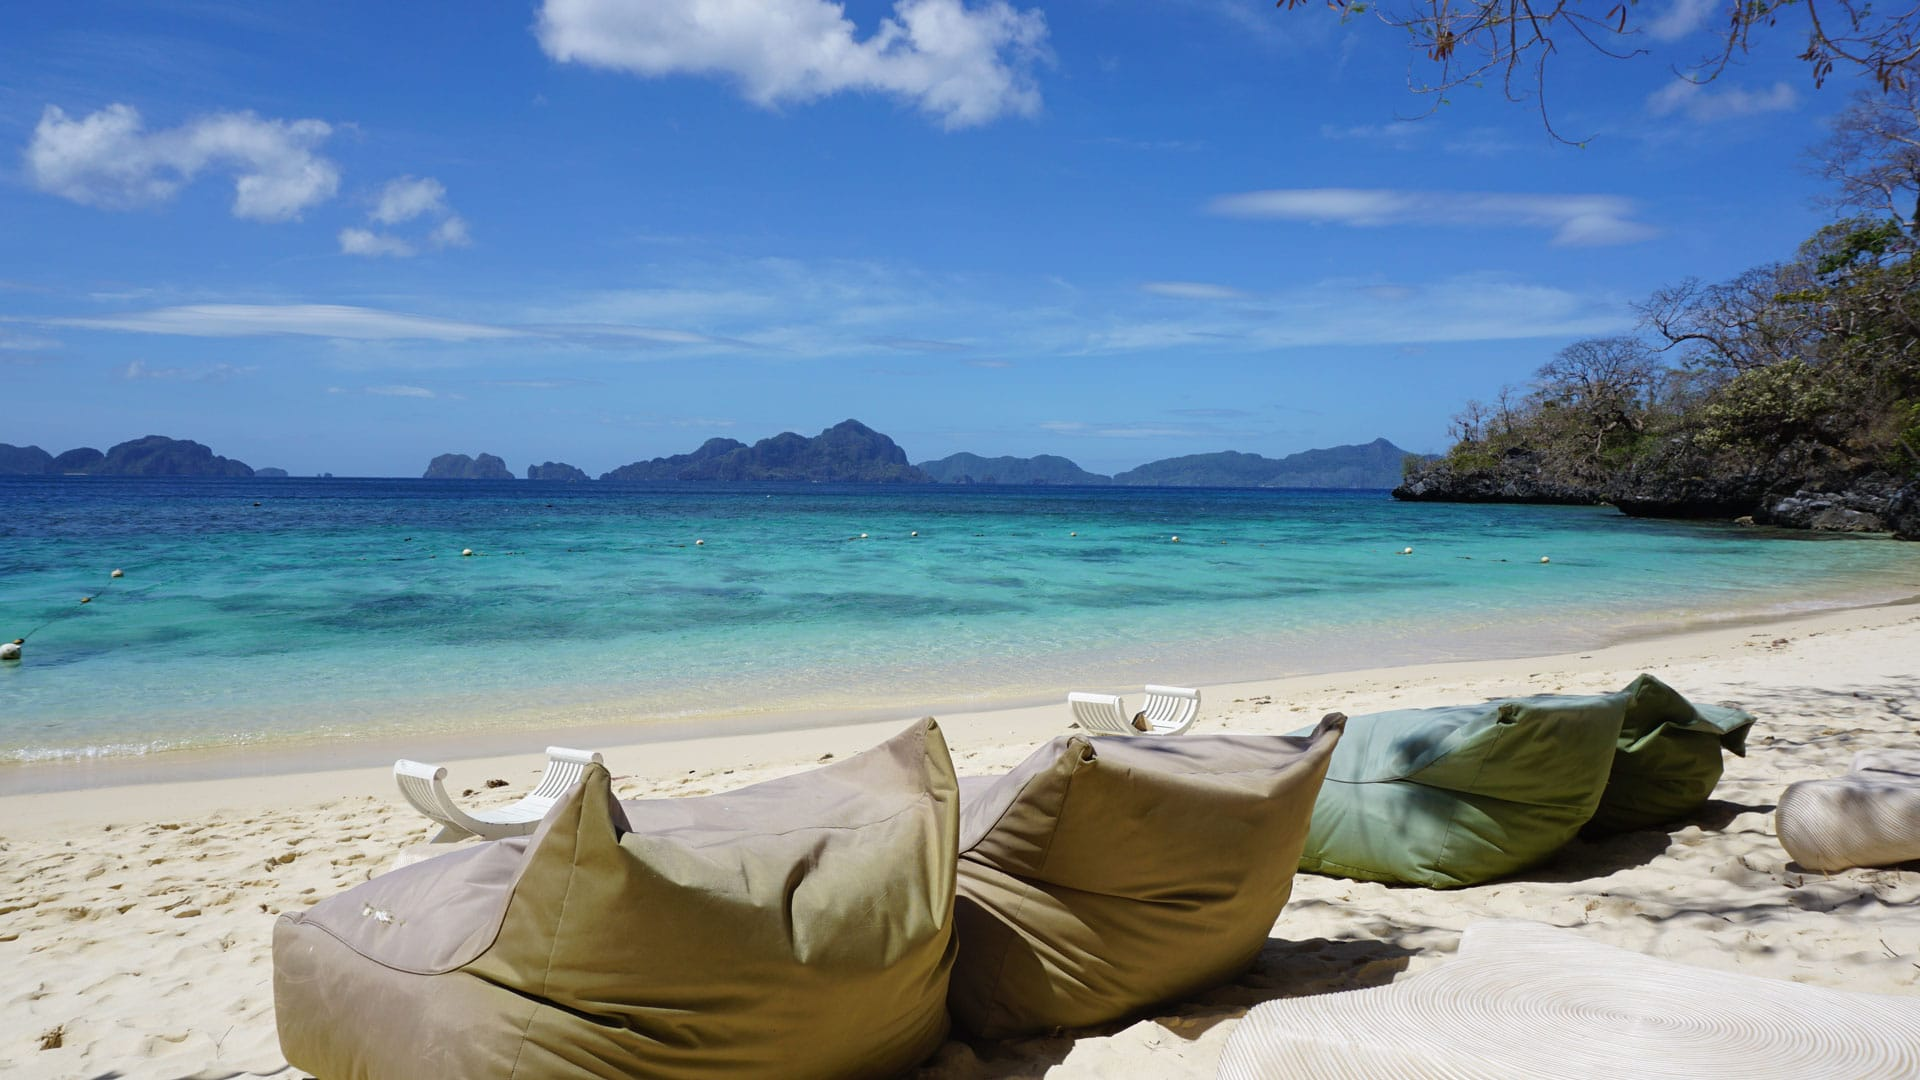 Seven Commando Beachone Of The Best Beaches In El Nido With White Fine Sand And Turquoise Clear Waters